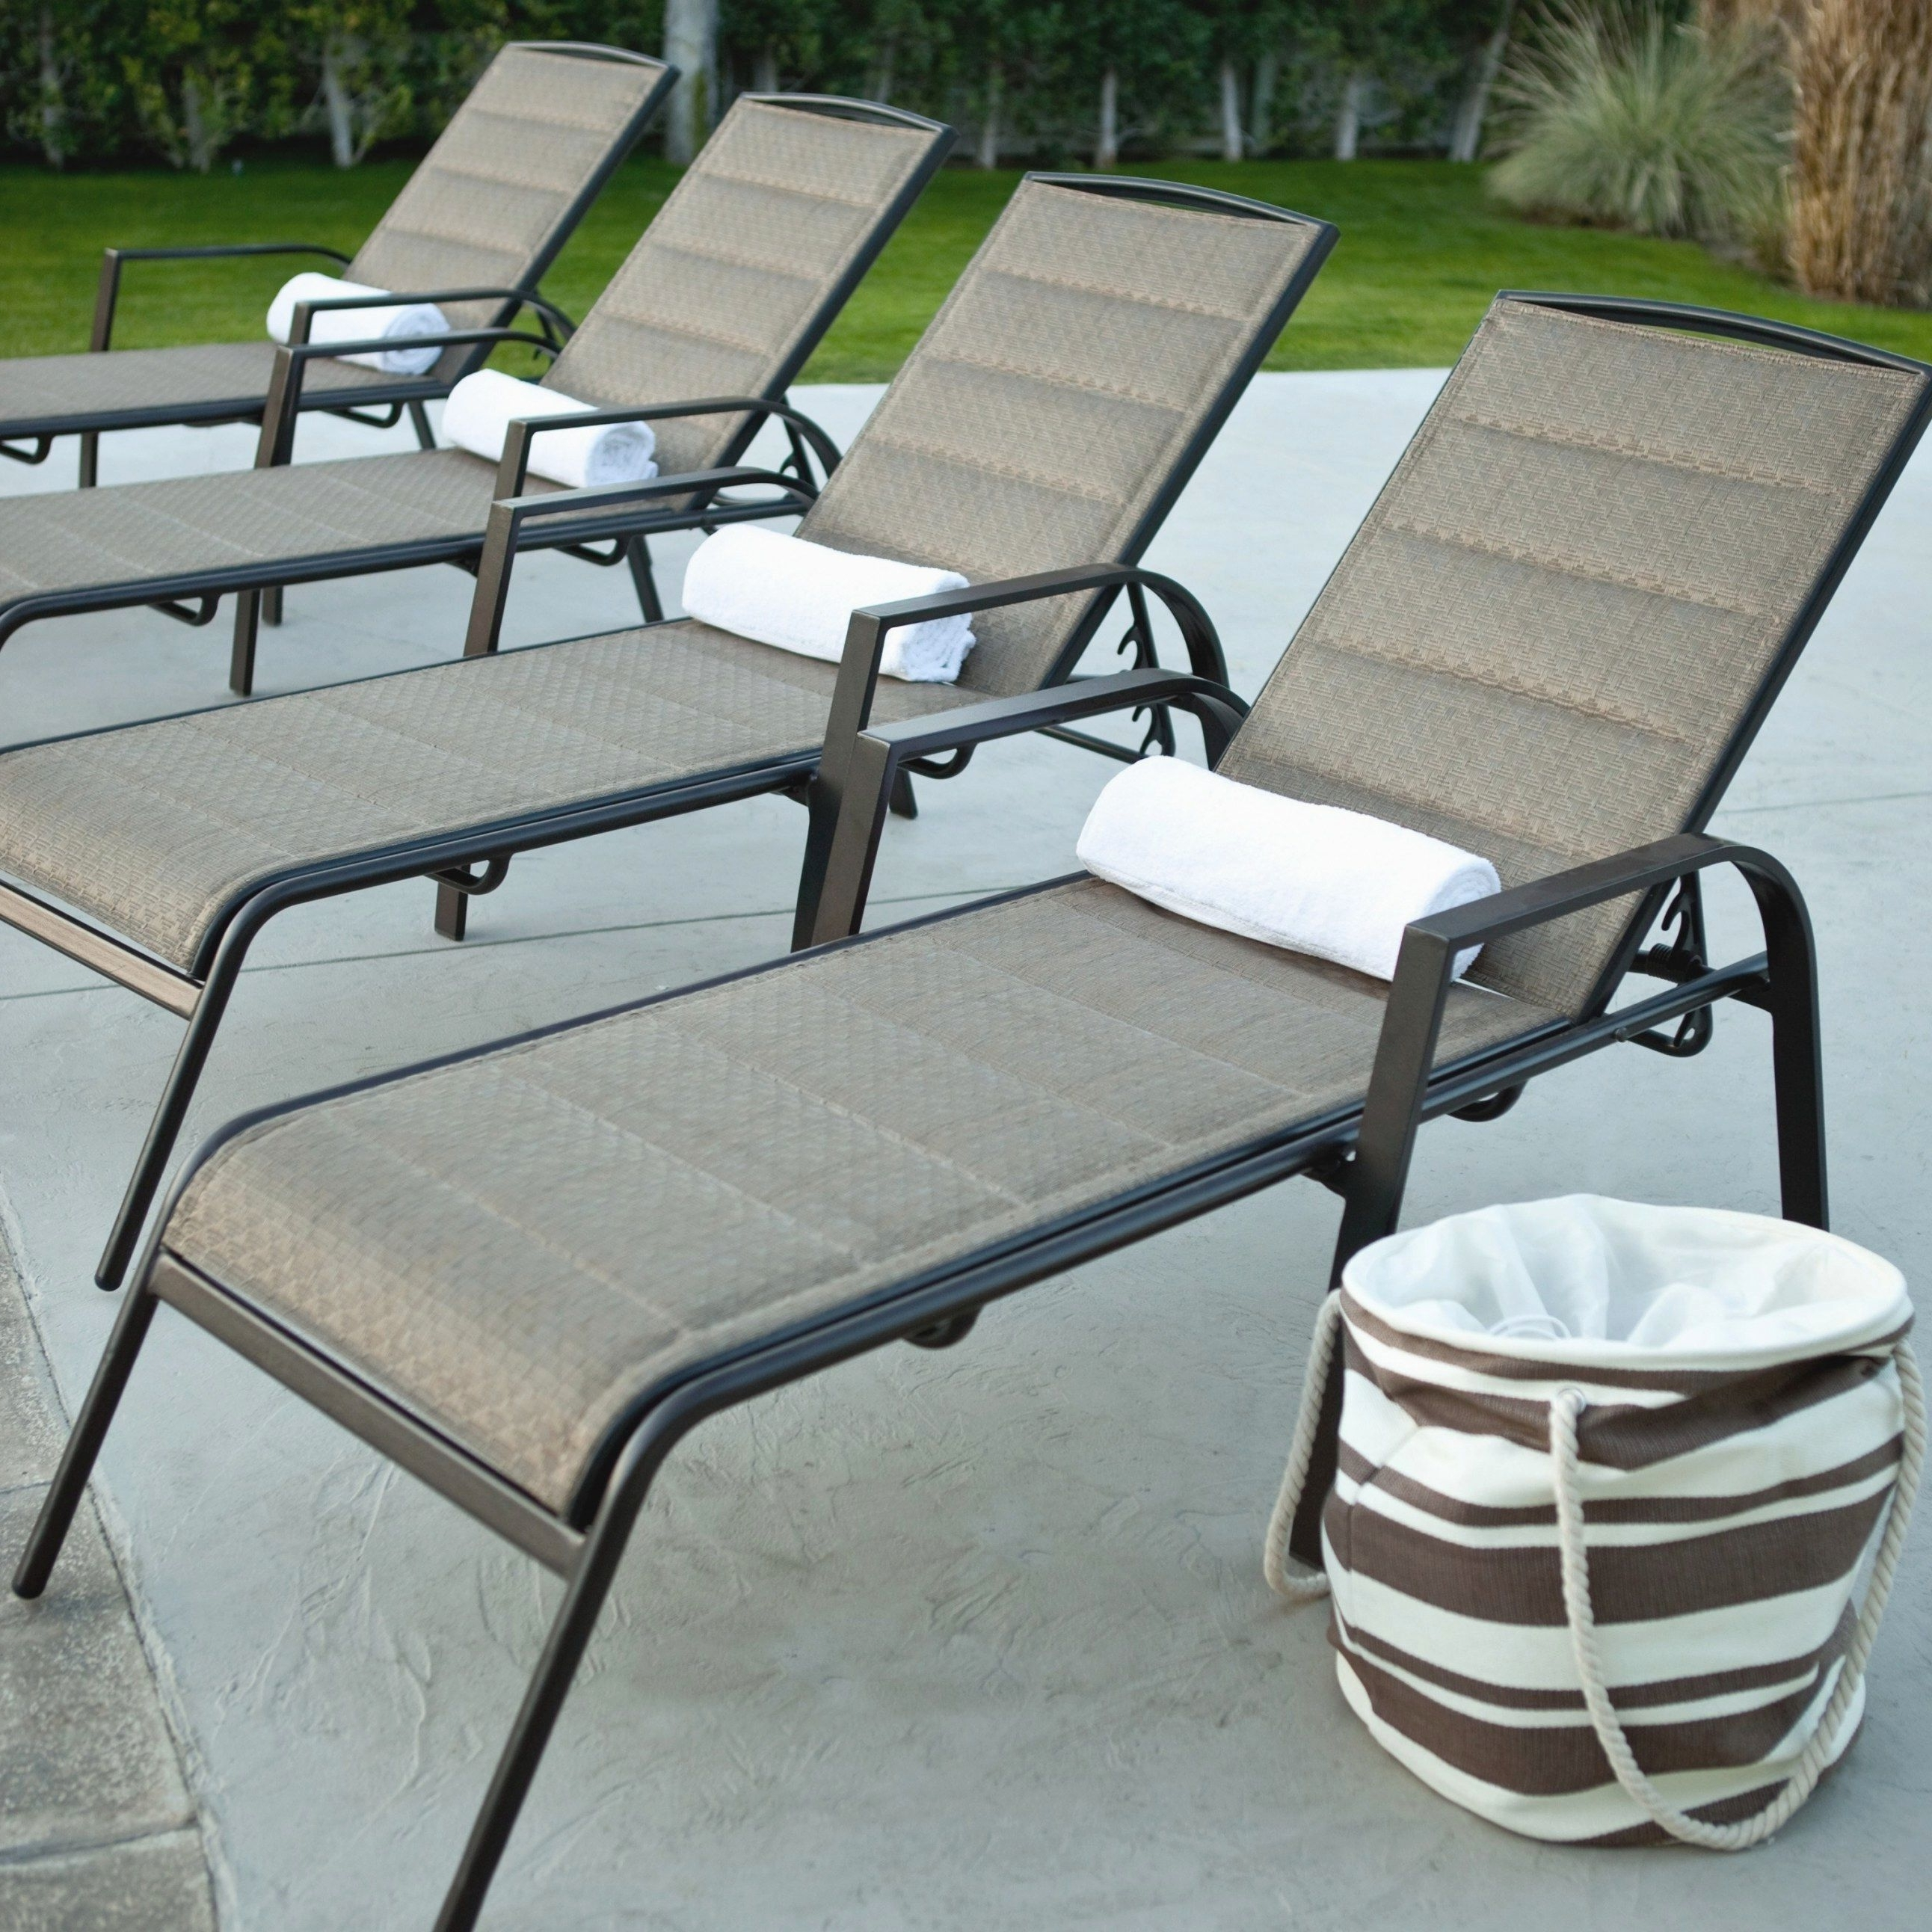 Most Recent Cheap Outdoor Chaise Lounge Chairs Pertaining To Outdoor Chaise Lounge Chairs Under 100 Modern Fresh Ideas (View 4 of 15)